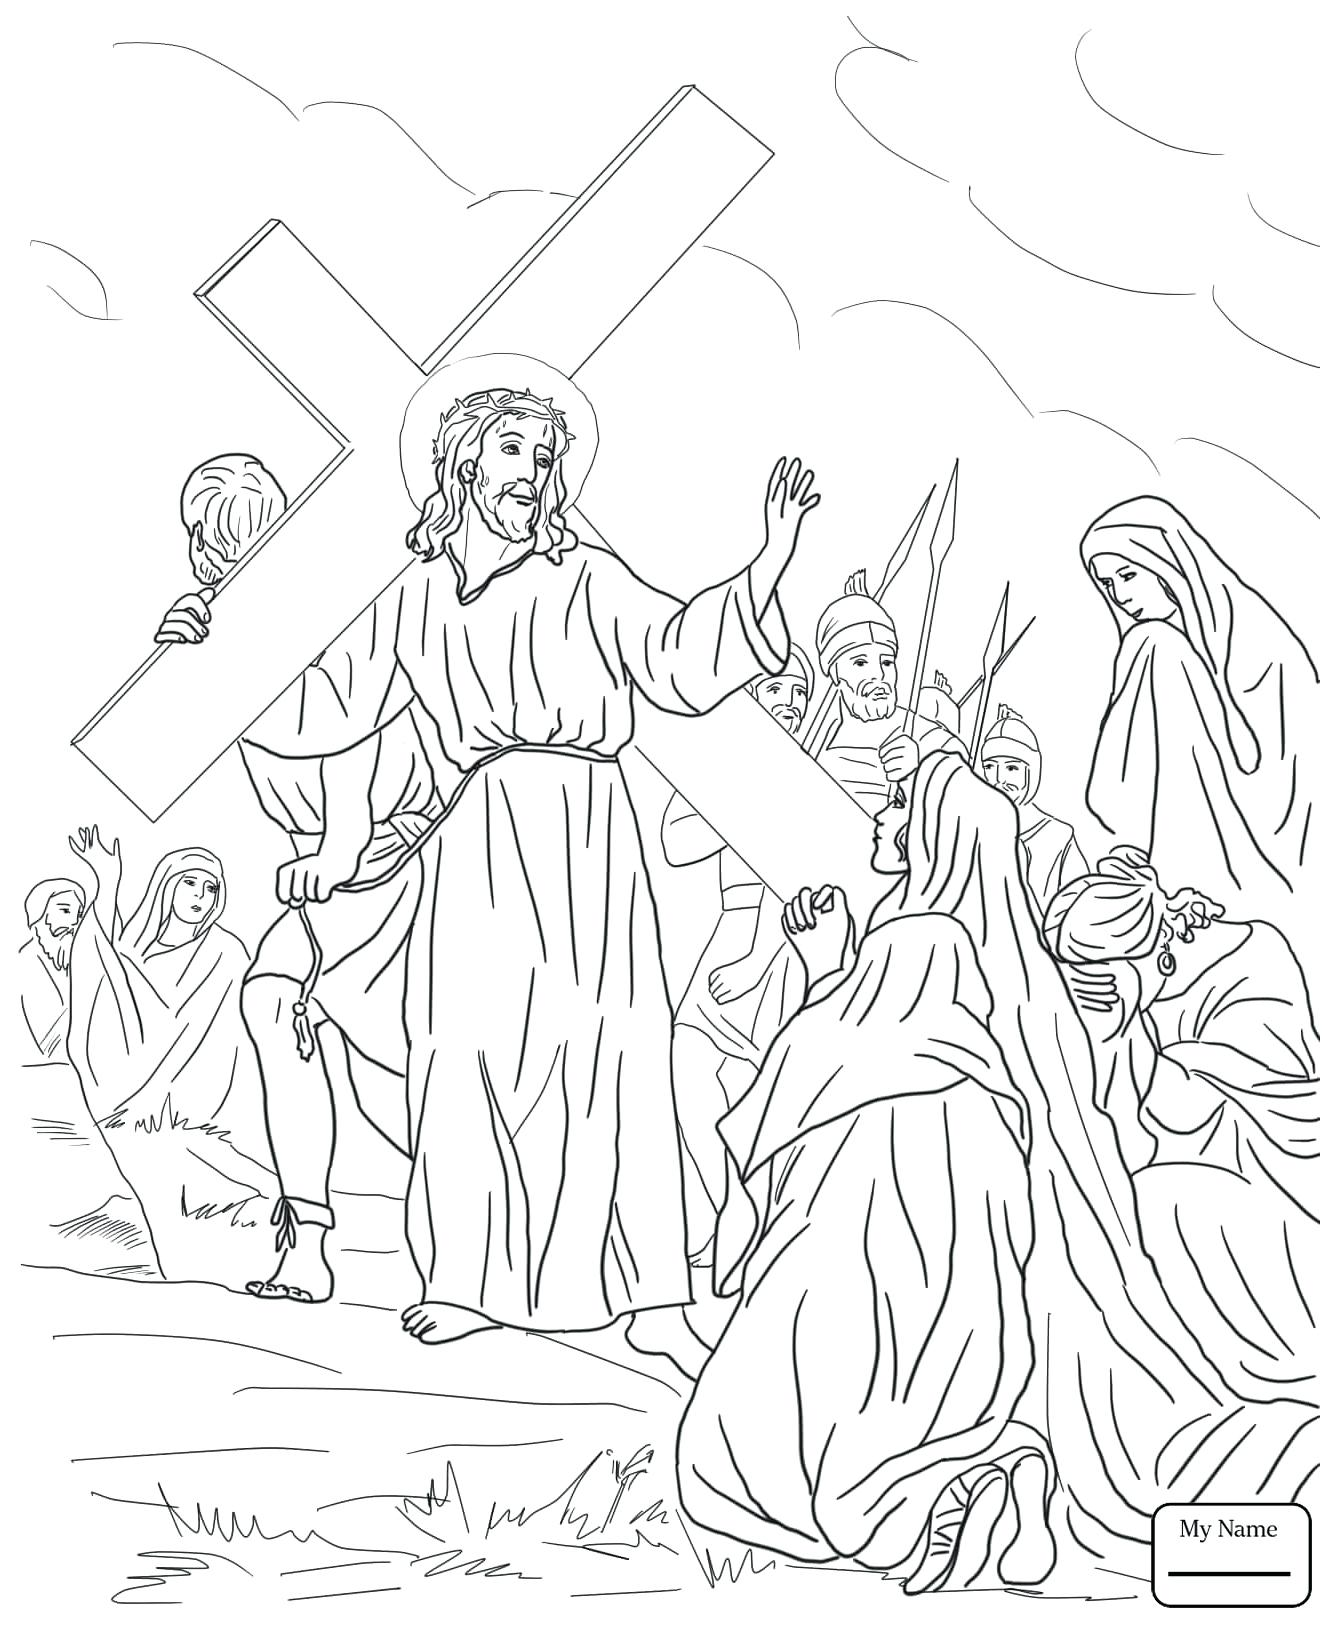 Jesus Crown Of Thorns Drawing at GetDrawings.com | Free for personal ...